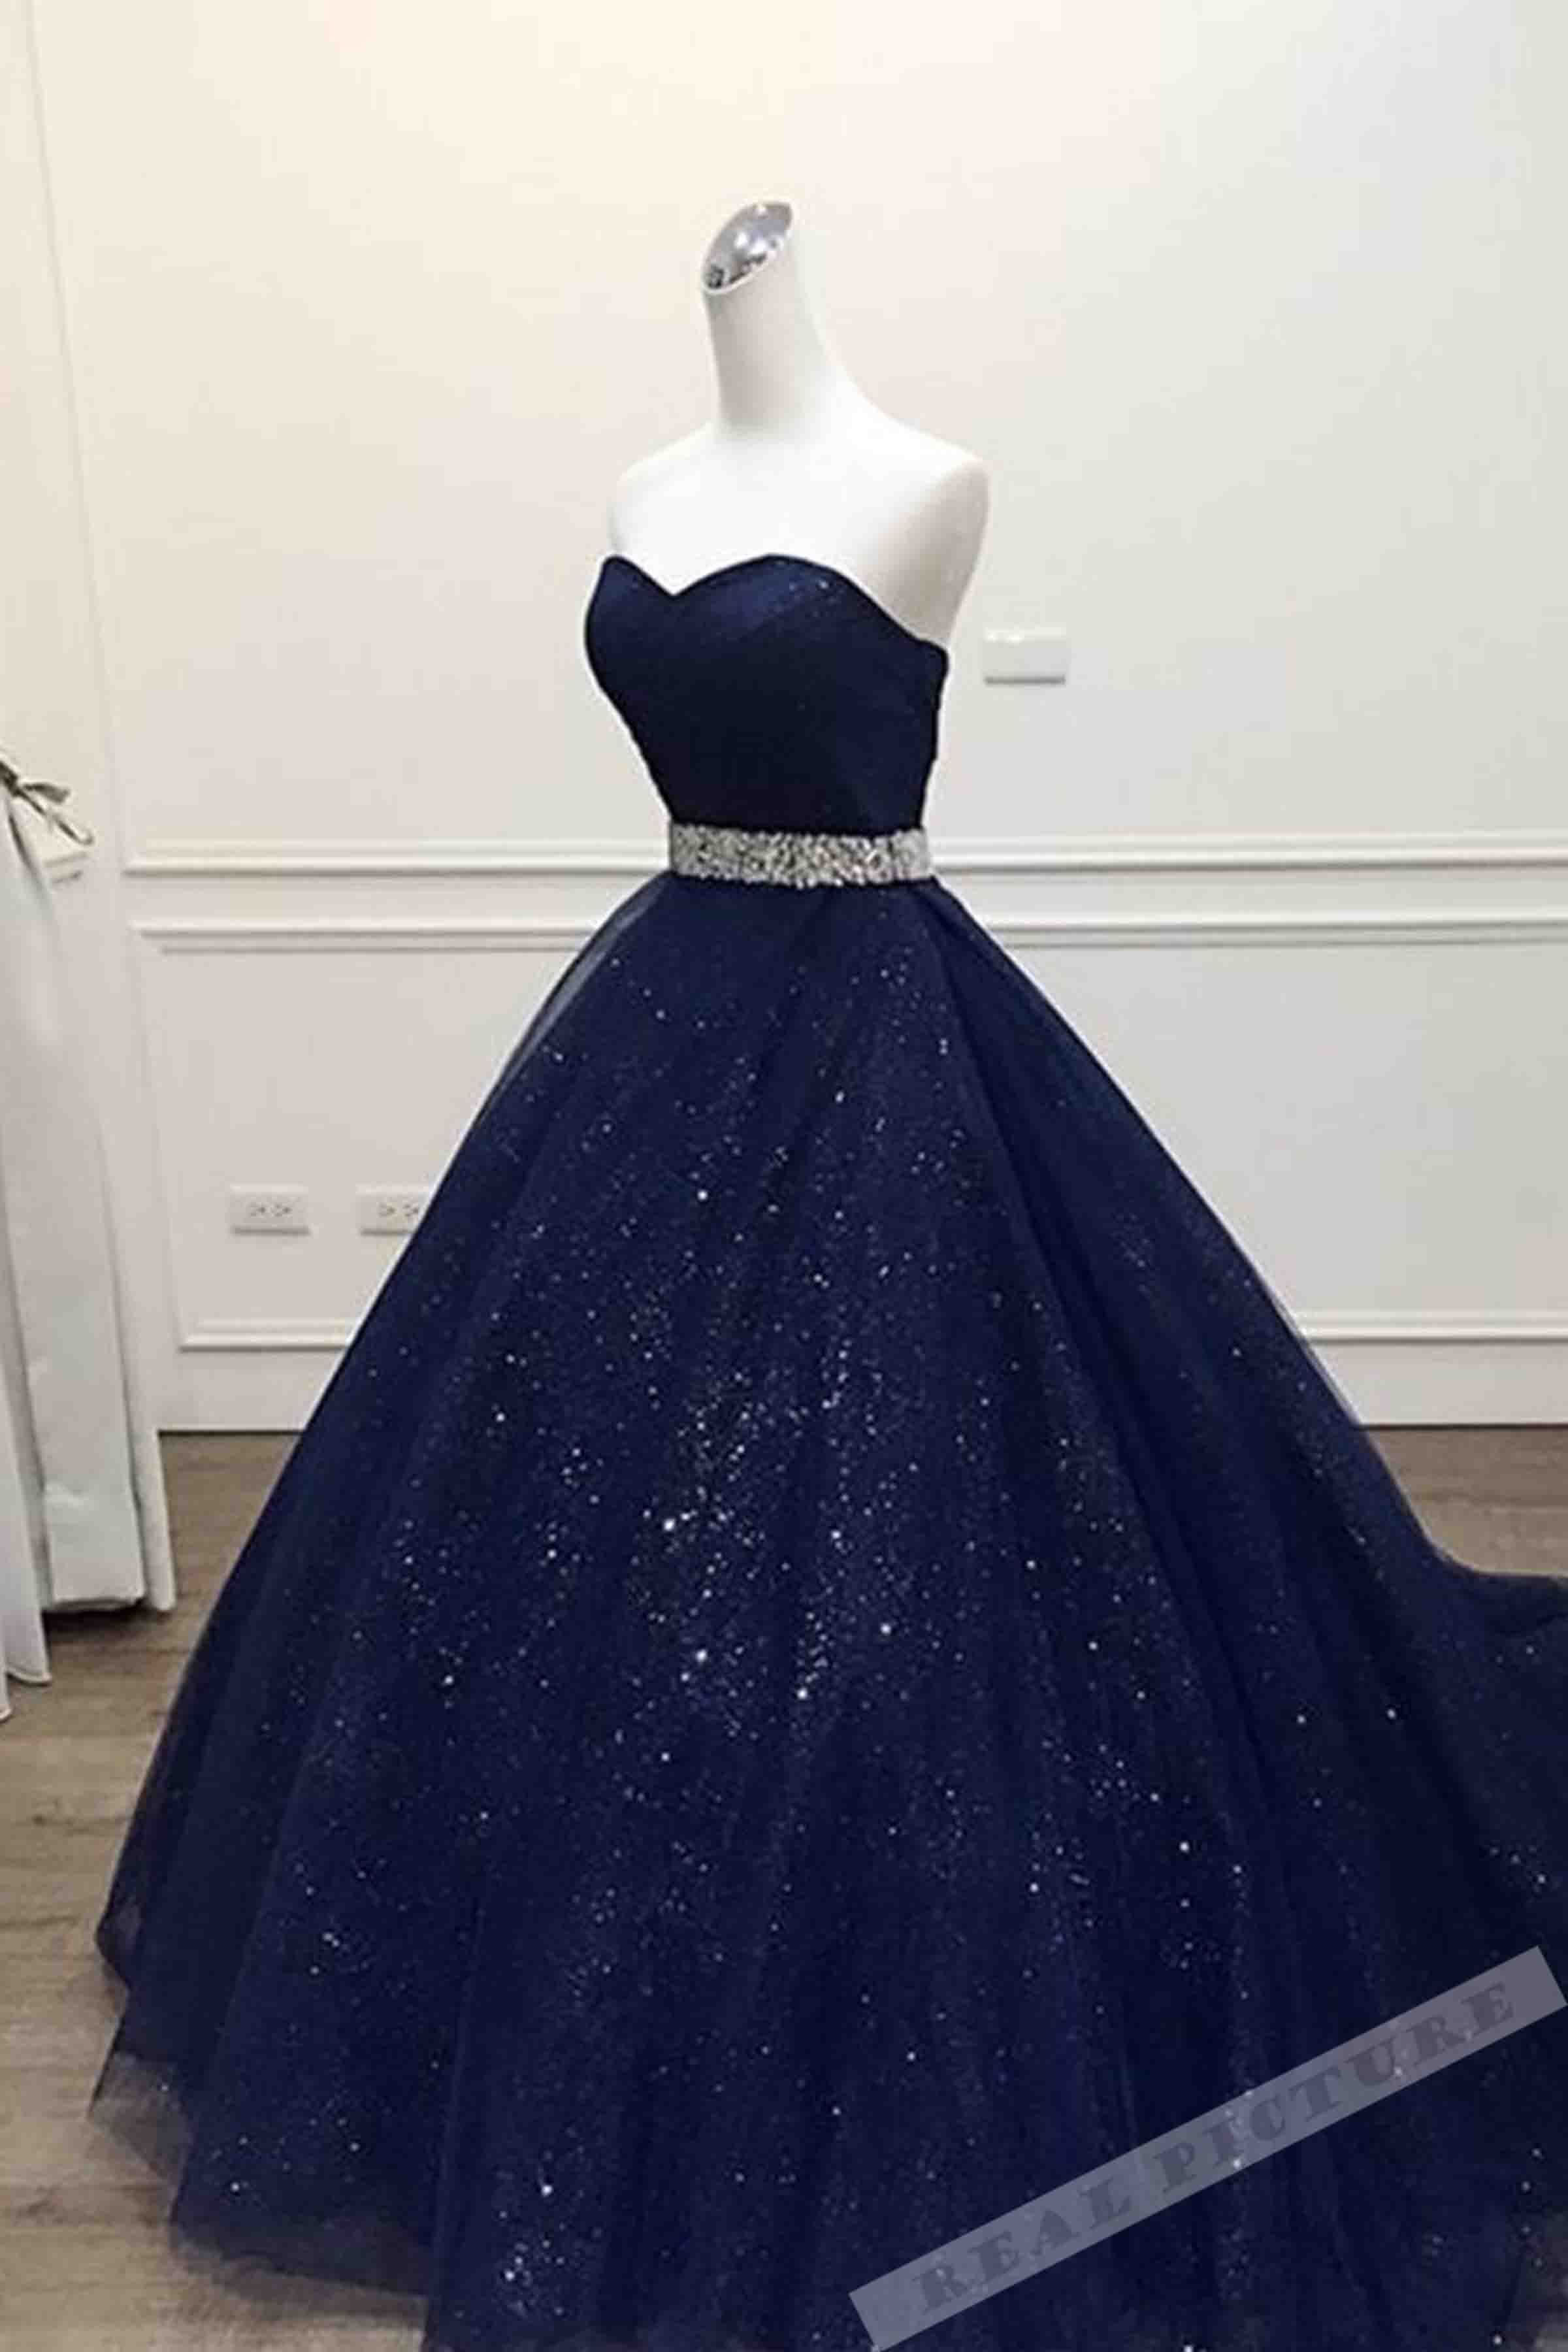 Dark blue tulle sweetheart sequins floorlength ball gown dress from